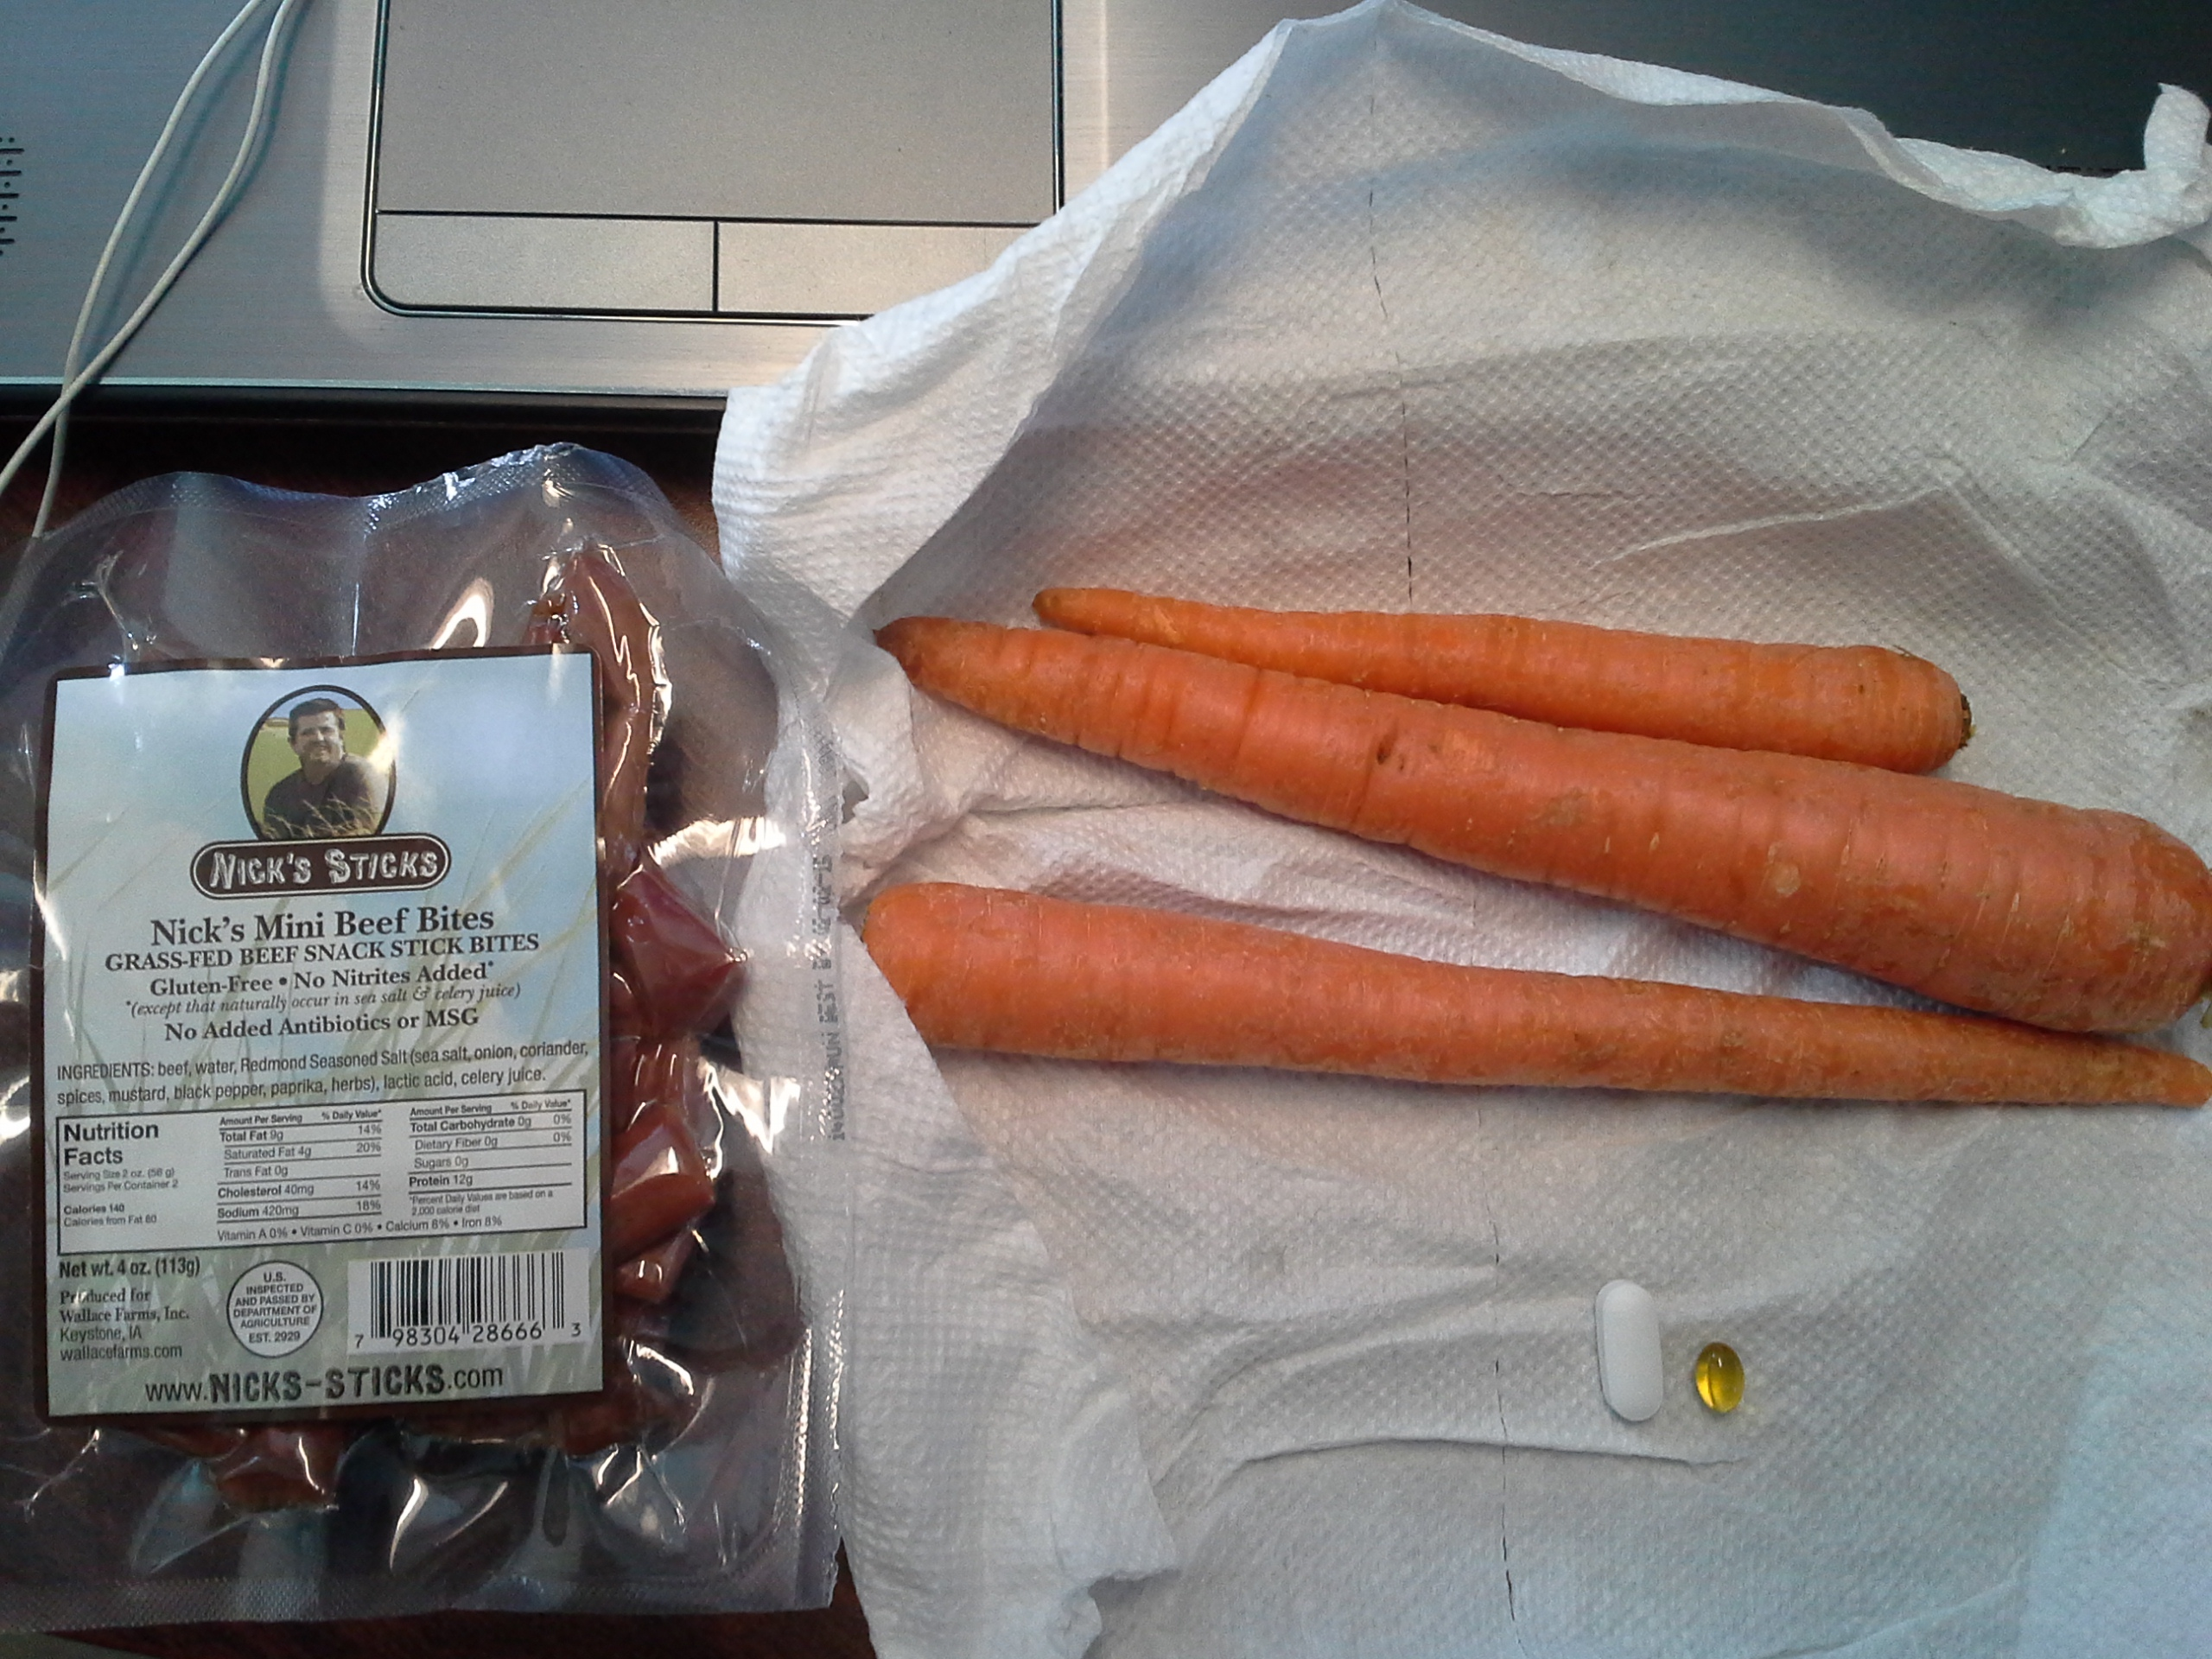 Lunch: 3:50 p.m. | 4 oz. beef sticks, 3 carrots, 5,000 IU Vitamin D capsule, Calcium/Magnesium/Zinc caplet